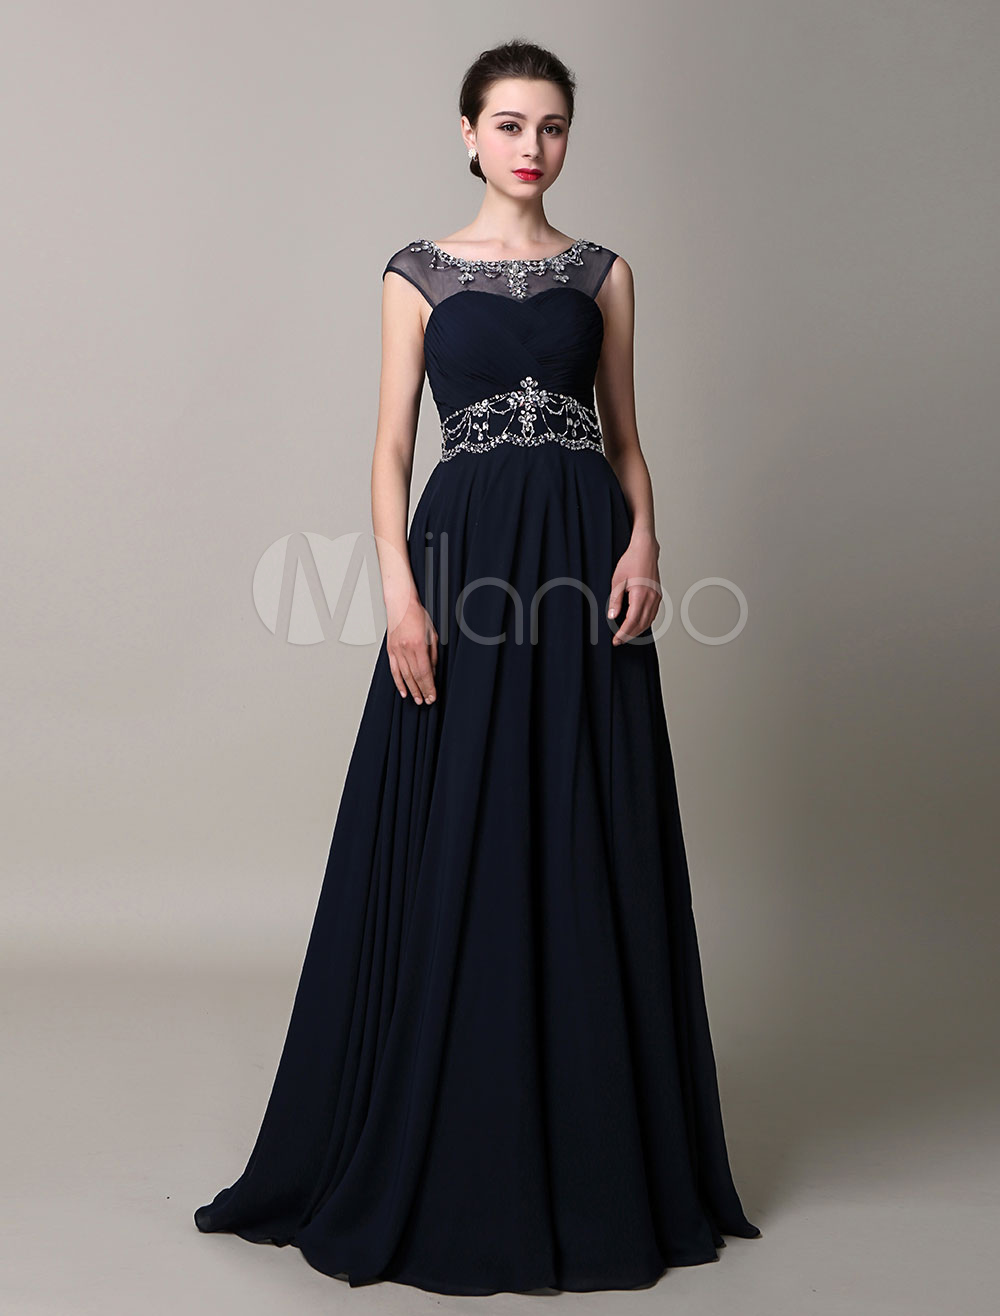 Black Backless Beaded Chiffon Satin A-Line Prom Dress